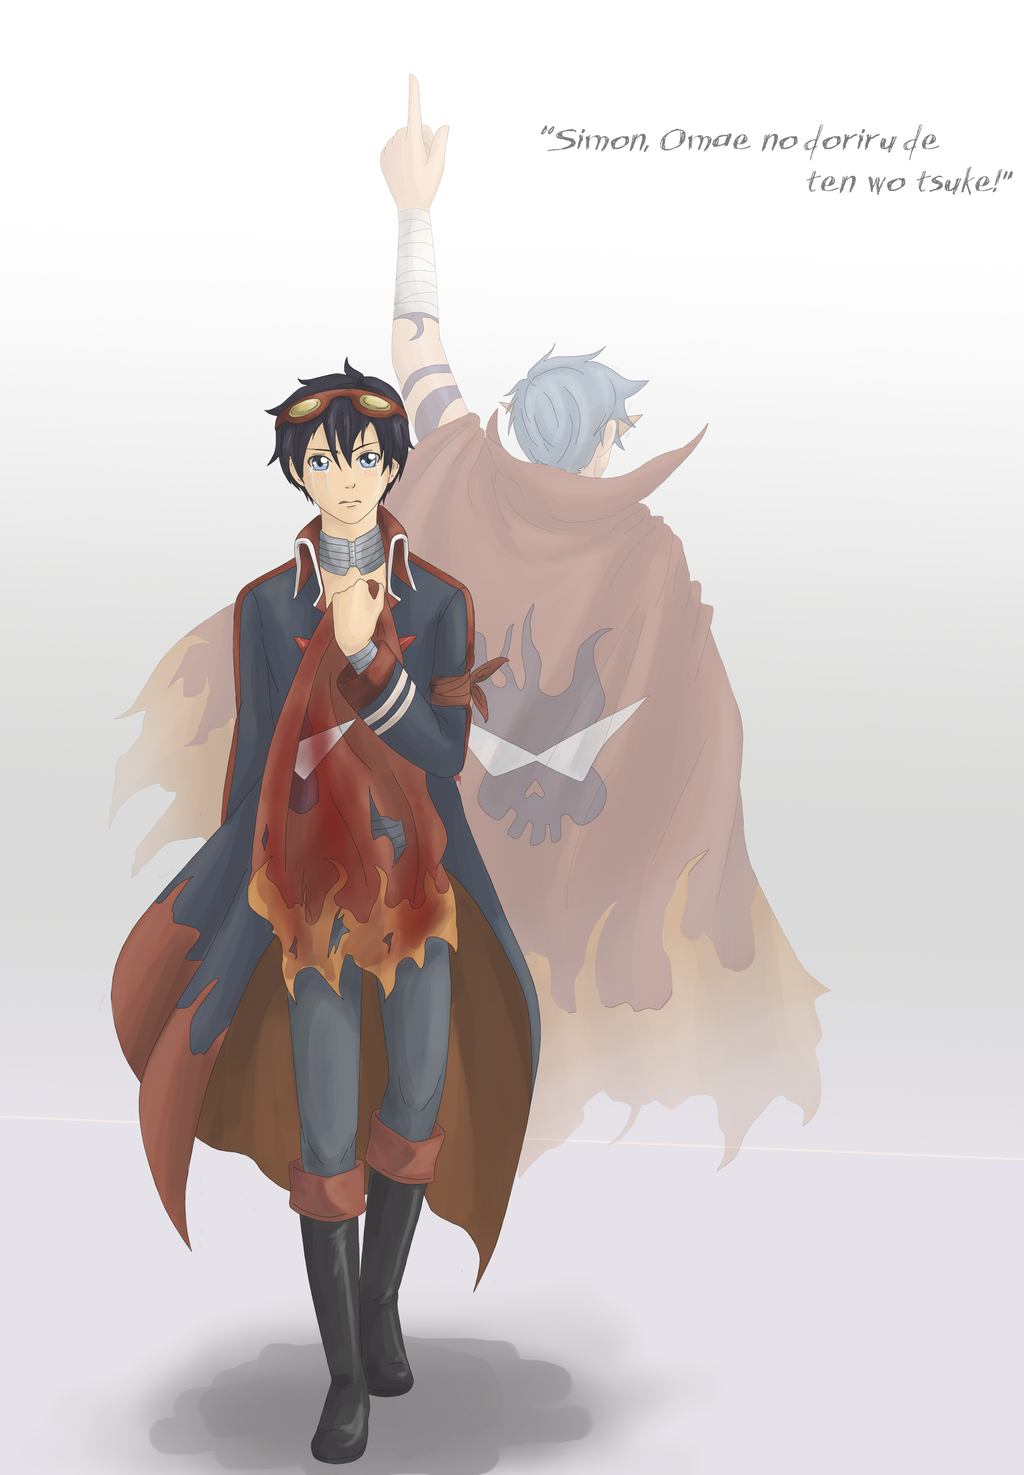 Kamina x Simon on Kamina--x--Simon - DeviantArt